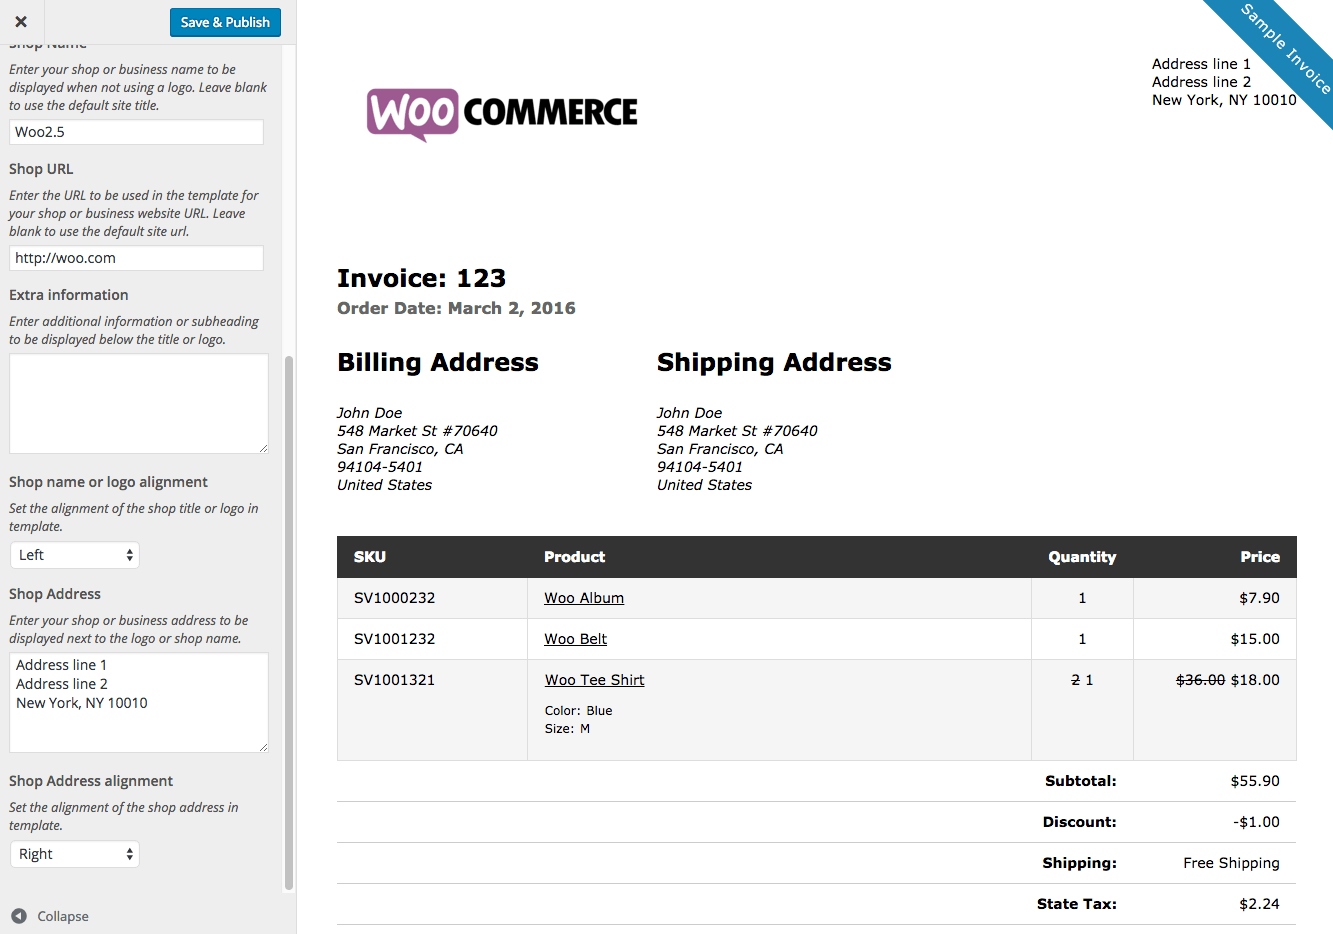 Howcanigettallerus  Winsome Woocommerce Print Invoices Amp Packing Lists  Woocommerce Docs With Inspiring Woocommerce Print Invoices  Packing Lists Customizer With Archaic Best Invoice App Android Also Examples Of Invoice In Addition Check Invoice And Invoice Example Word As Well As Google Template Invoice Additionally Invoice In Arrears From Docswoocommercecom With Howcanigettallerus  Inspiring Woocommerce Print Invoices Amp Packing Lists  Woocommerce Docs With Archaic Woocommerce Print Invoices  Packing Lists Customizer And Winsome Best Invoice App Android Also Examples Of Invoice In Addition Check Invoice From Docswoocommercecom